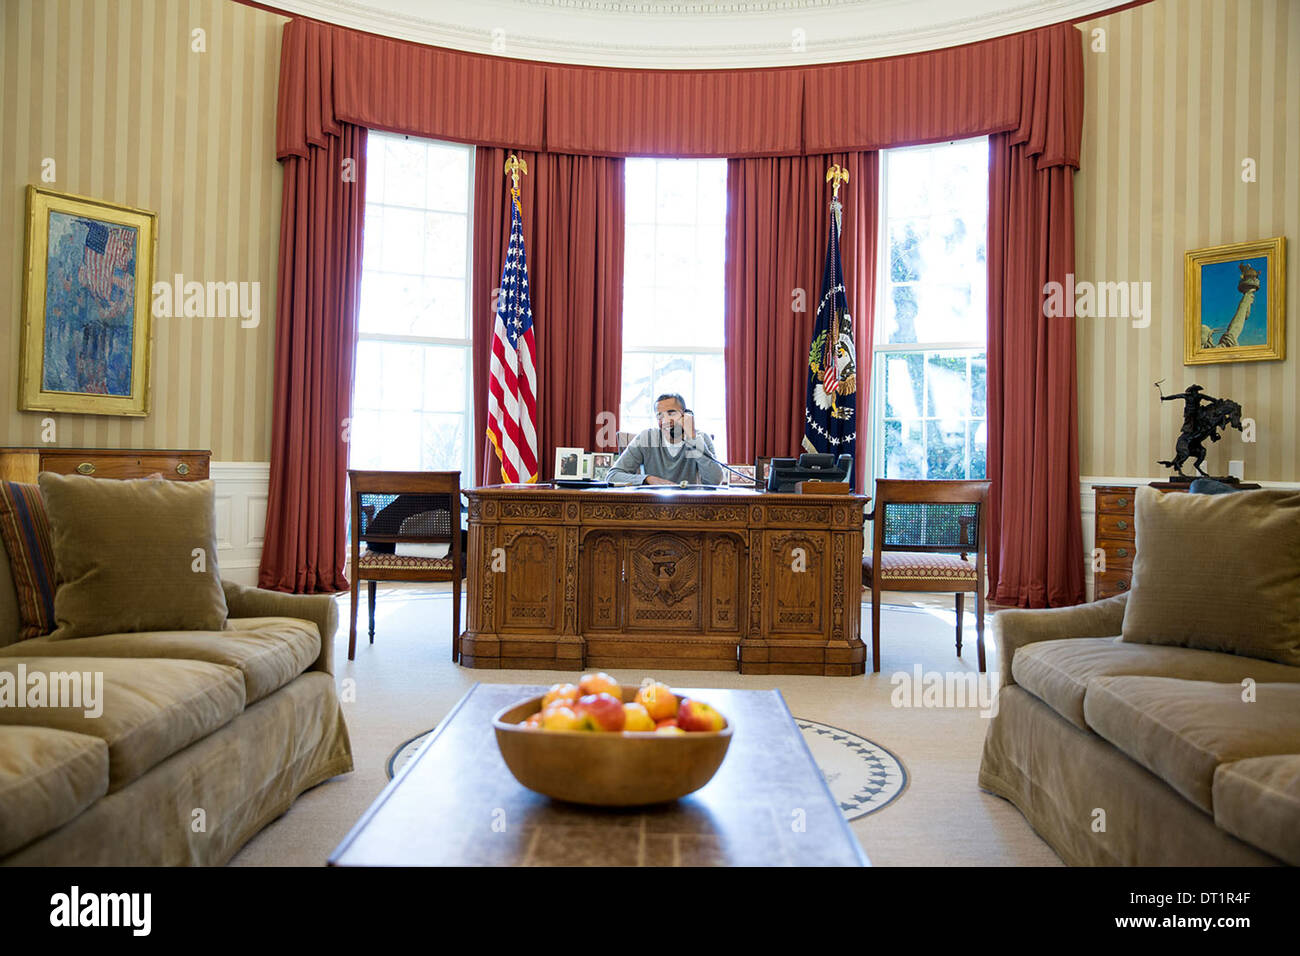 US President Barack Obama makes Thanksgiving Day phone calls to U.S. troops from the Oval Office of the White House November 28, 2013 in Washington, DC. - Stock Image